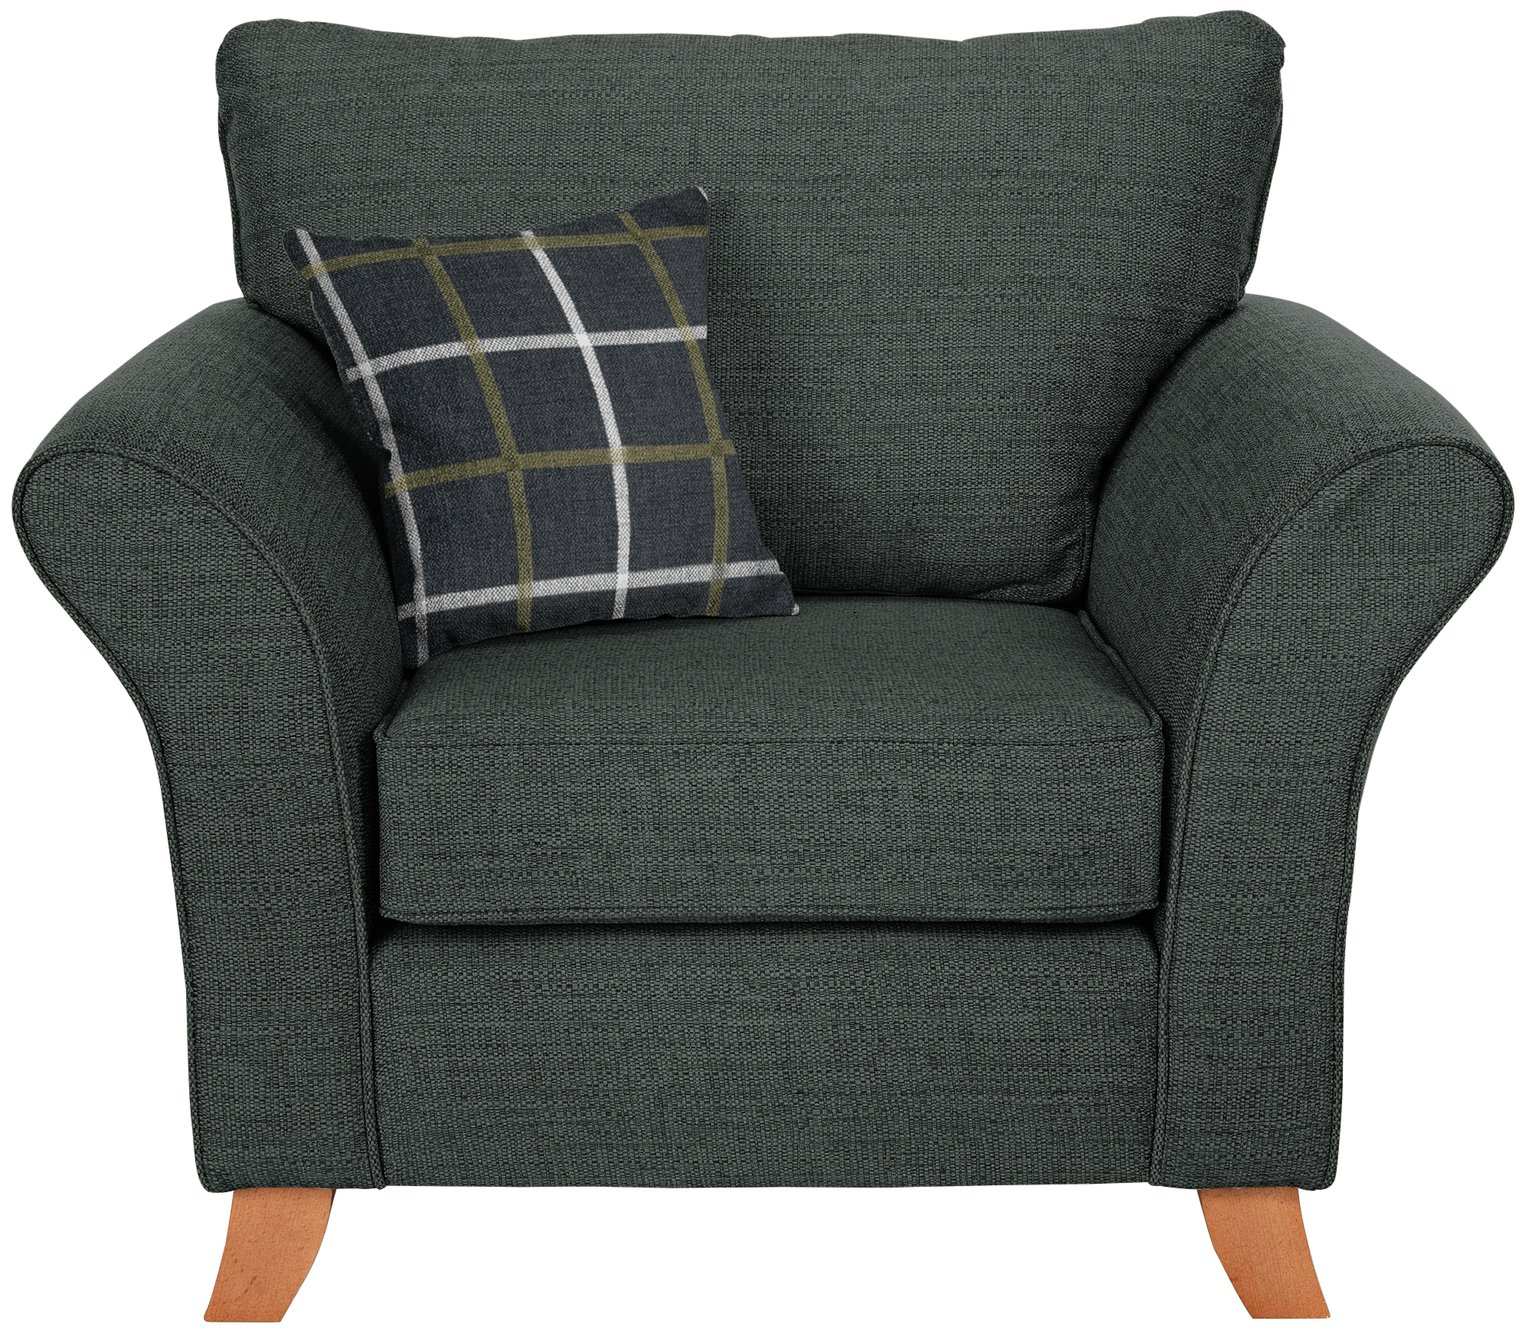 Argos Home Kayla Fabric Armchair - Charcoal